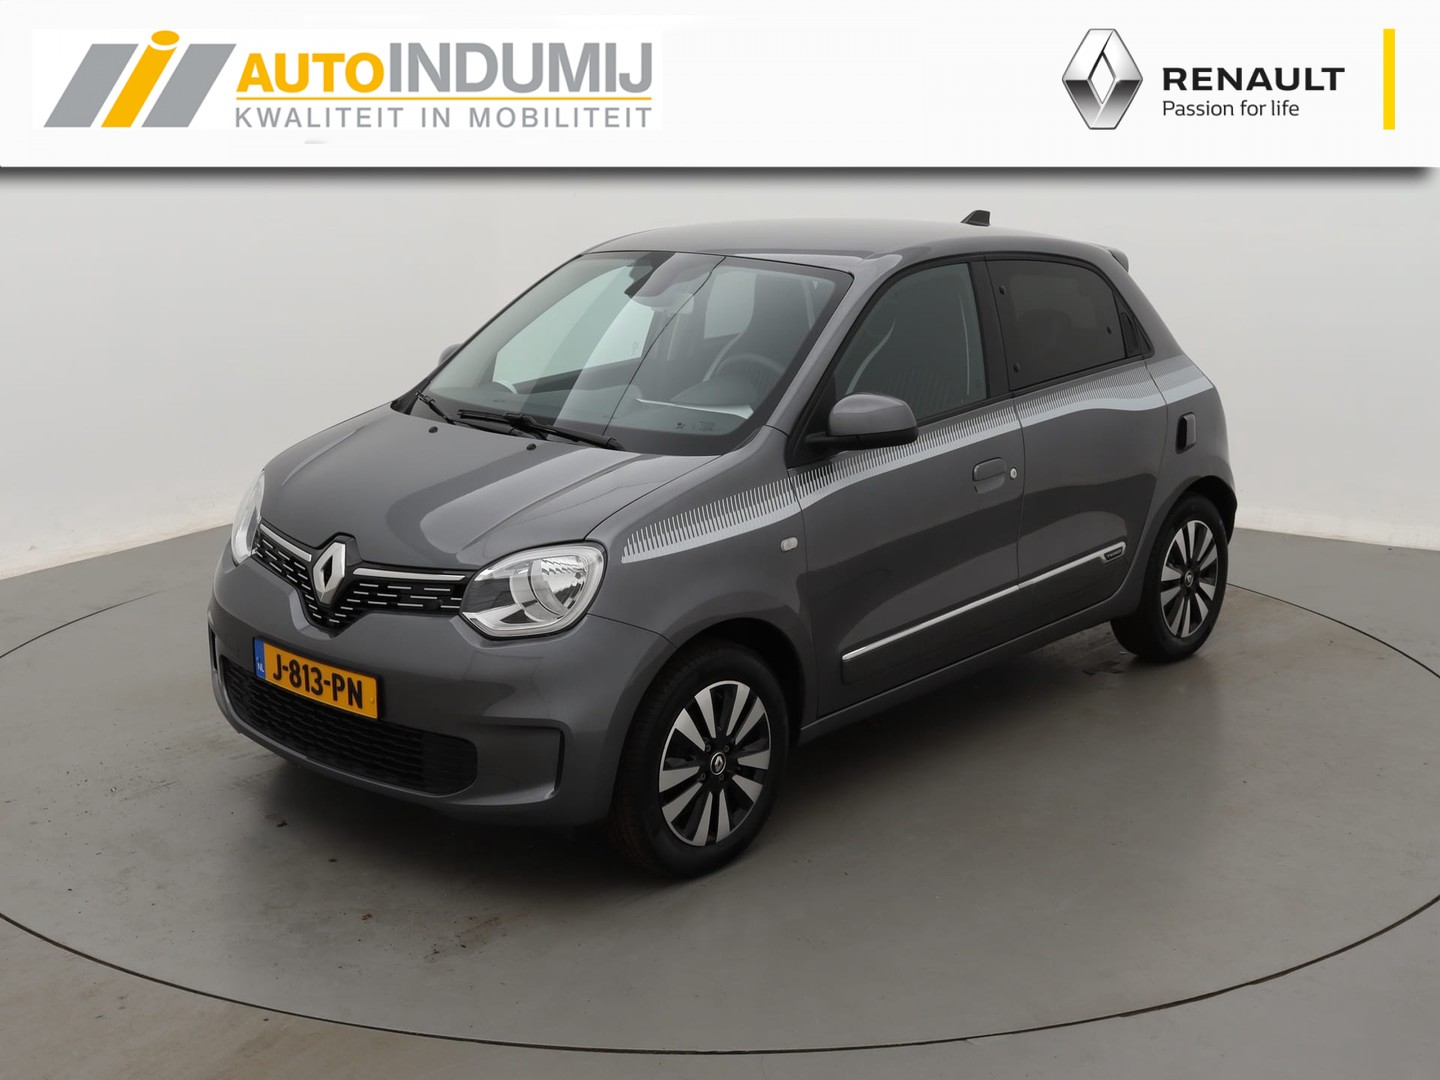 Renault Twingo Sce 75 intens / apple carplay & android auto / climate control / cruise control